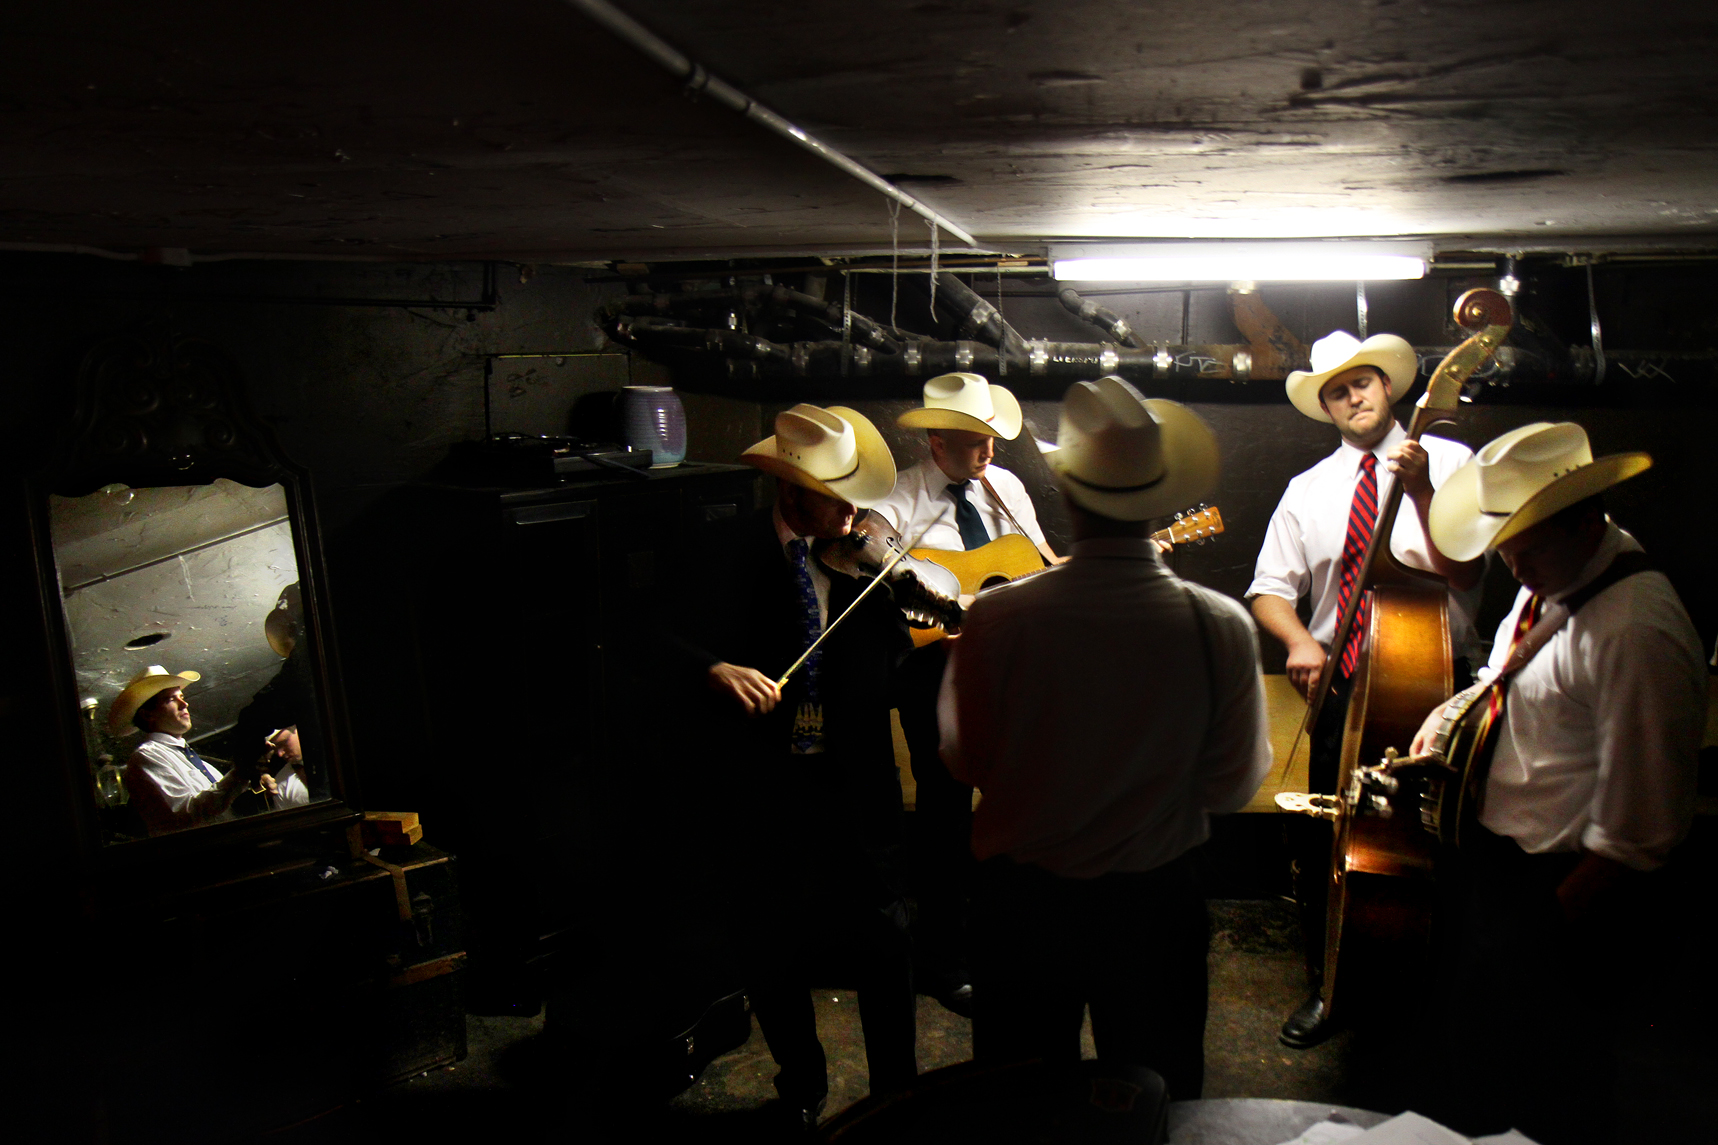 The Windy Hill band rehearses one last song before heading to the stage at Amnesia, in San Francisco on Aug. 15, 2011.